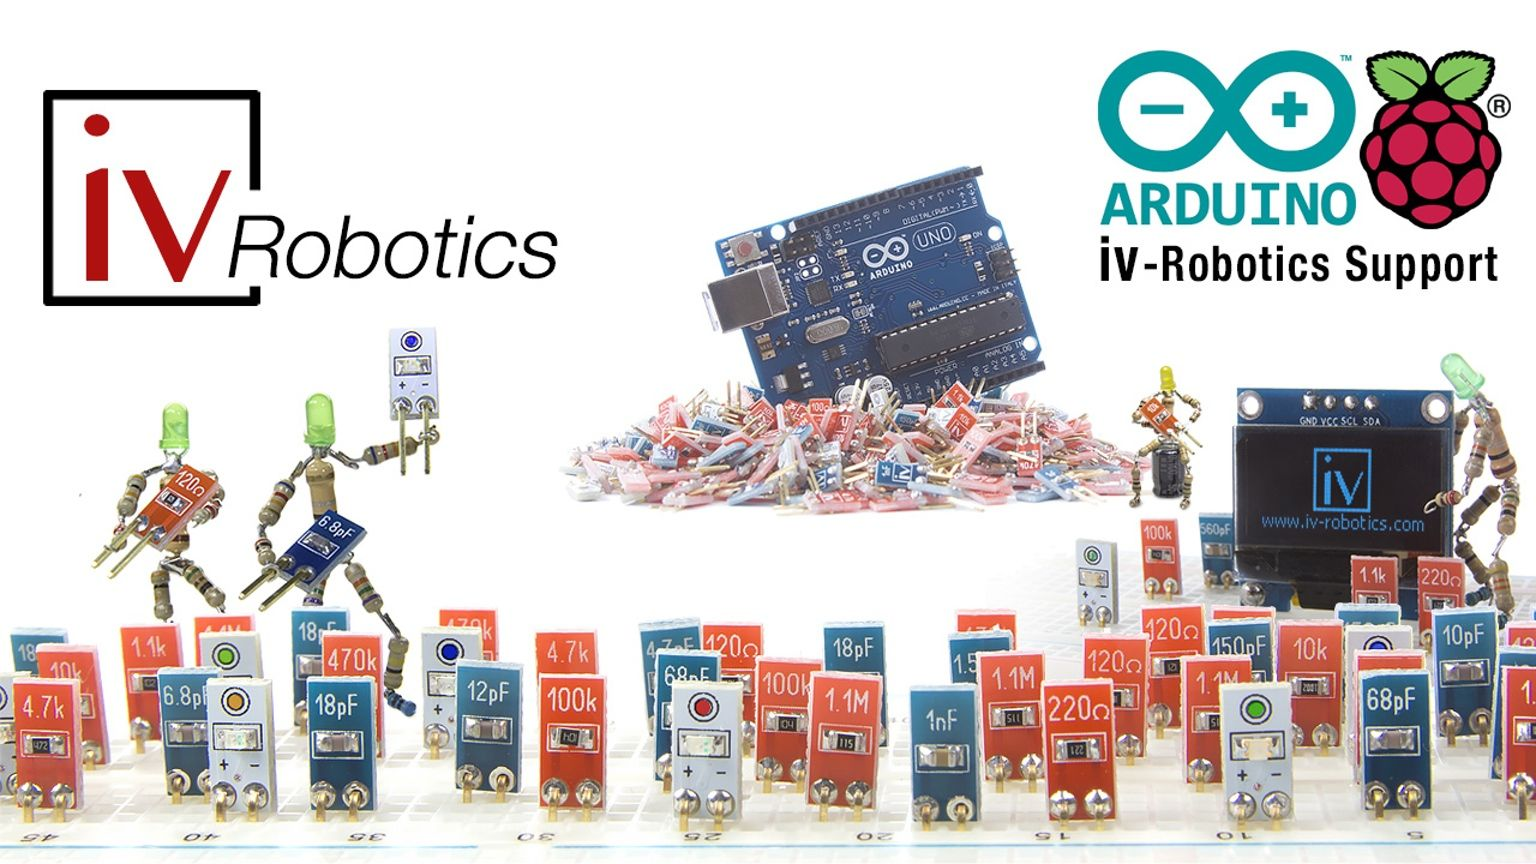 iv-Robotics presents the first electrical components